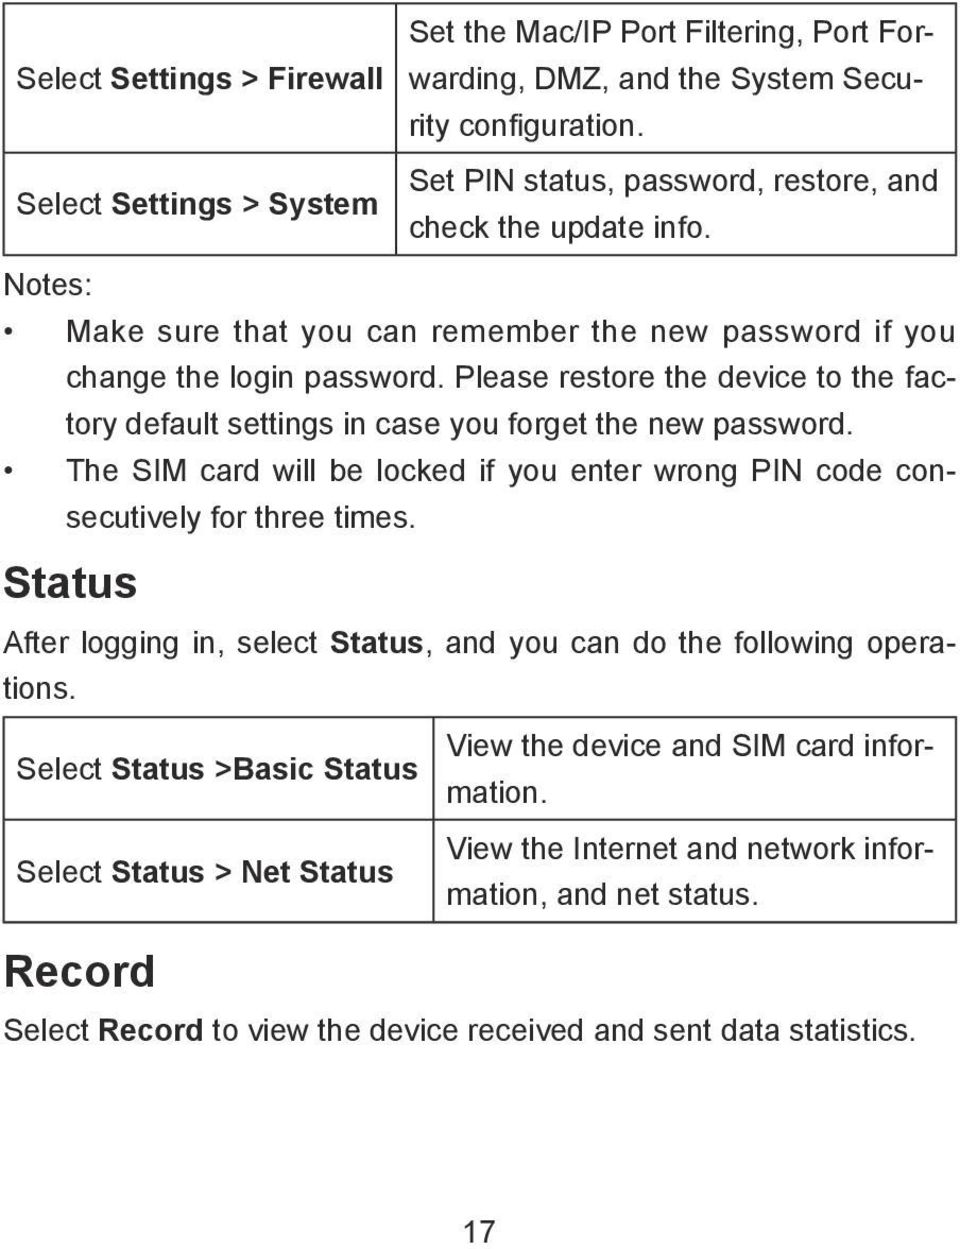 Please restore the device to the factory default settings in case you forget the new password. The SIM card will be locked if you enter wrong PIN code consecutively for three times.